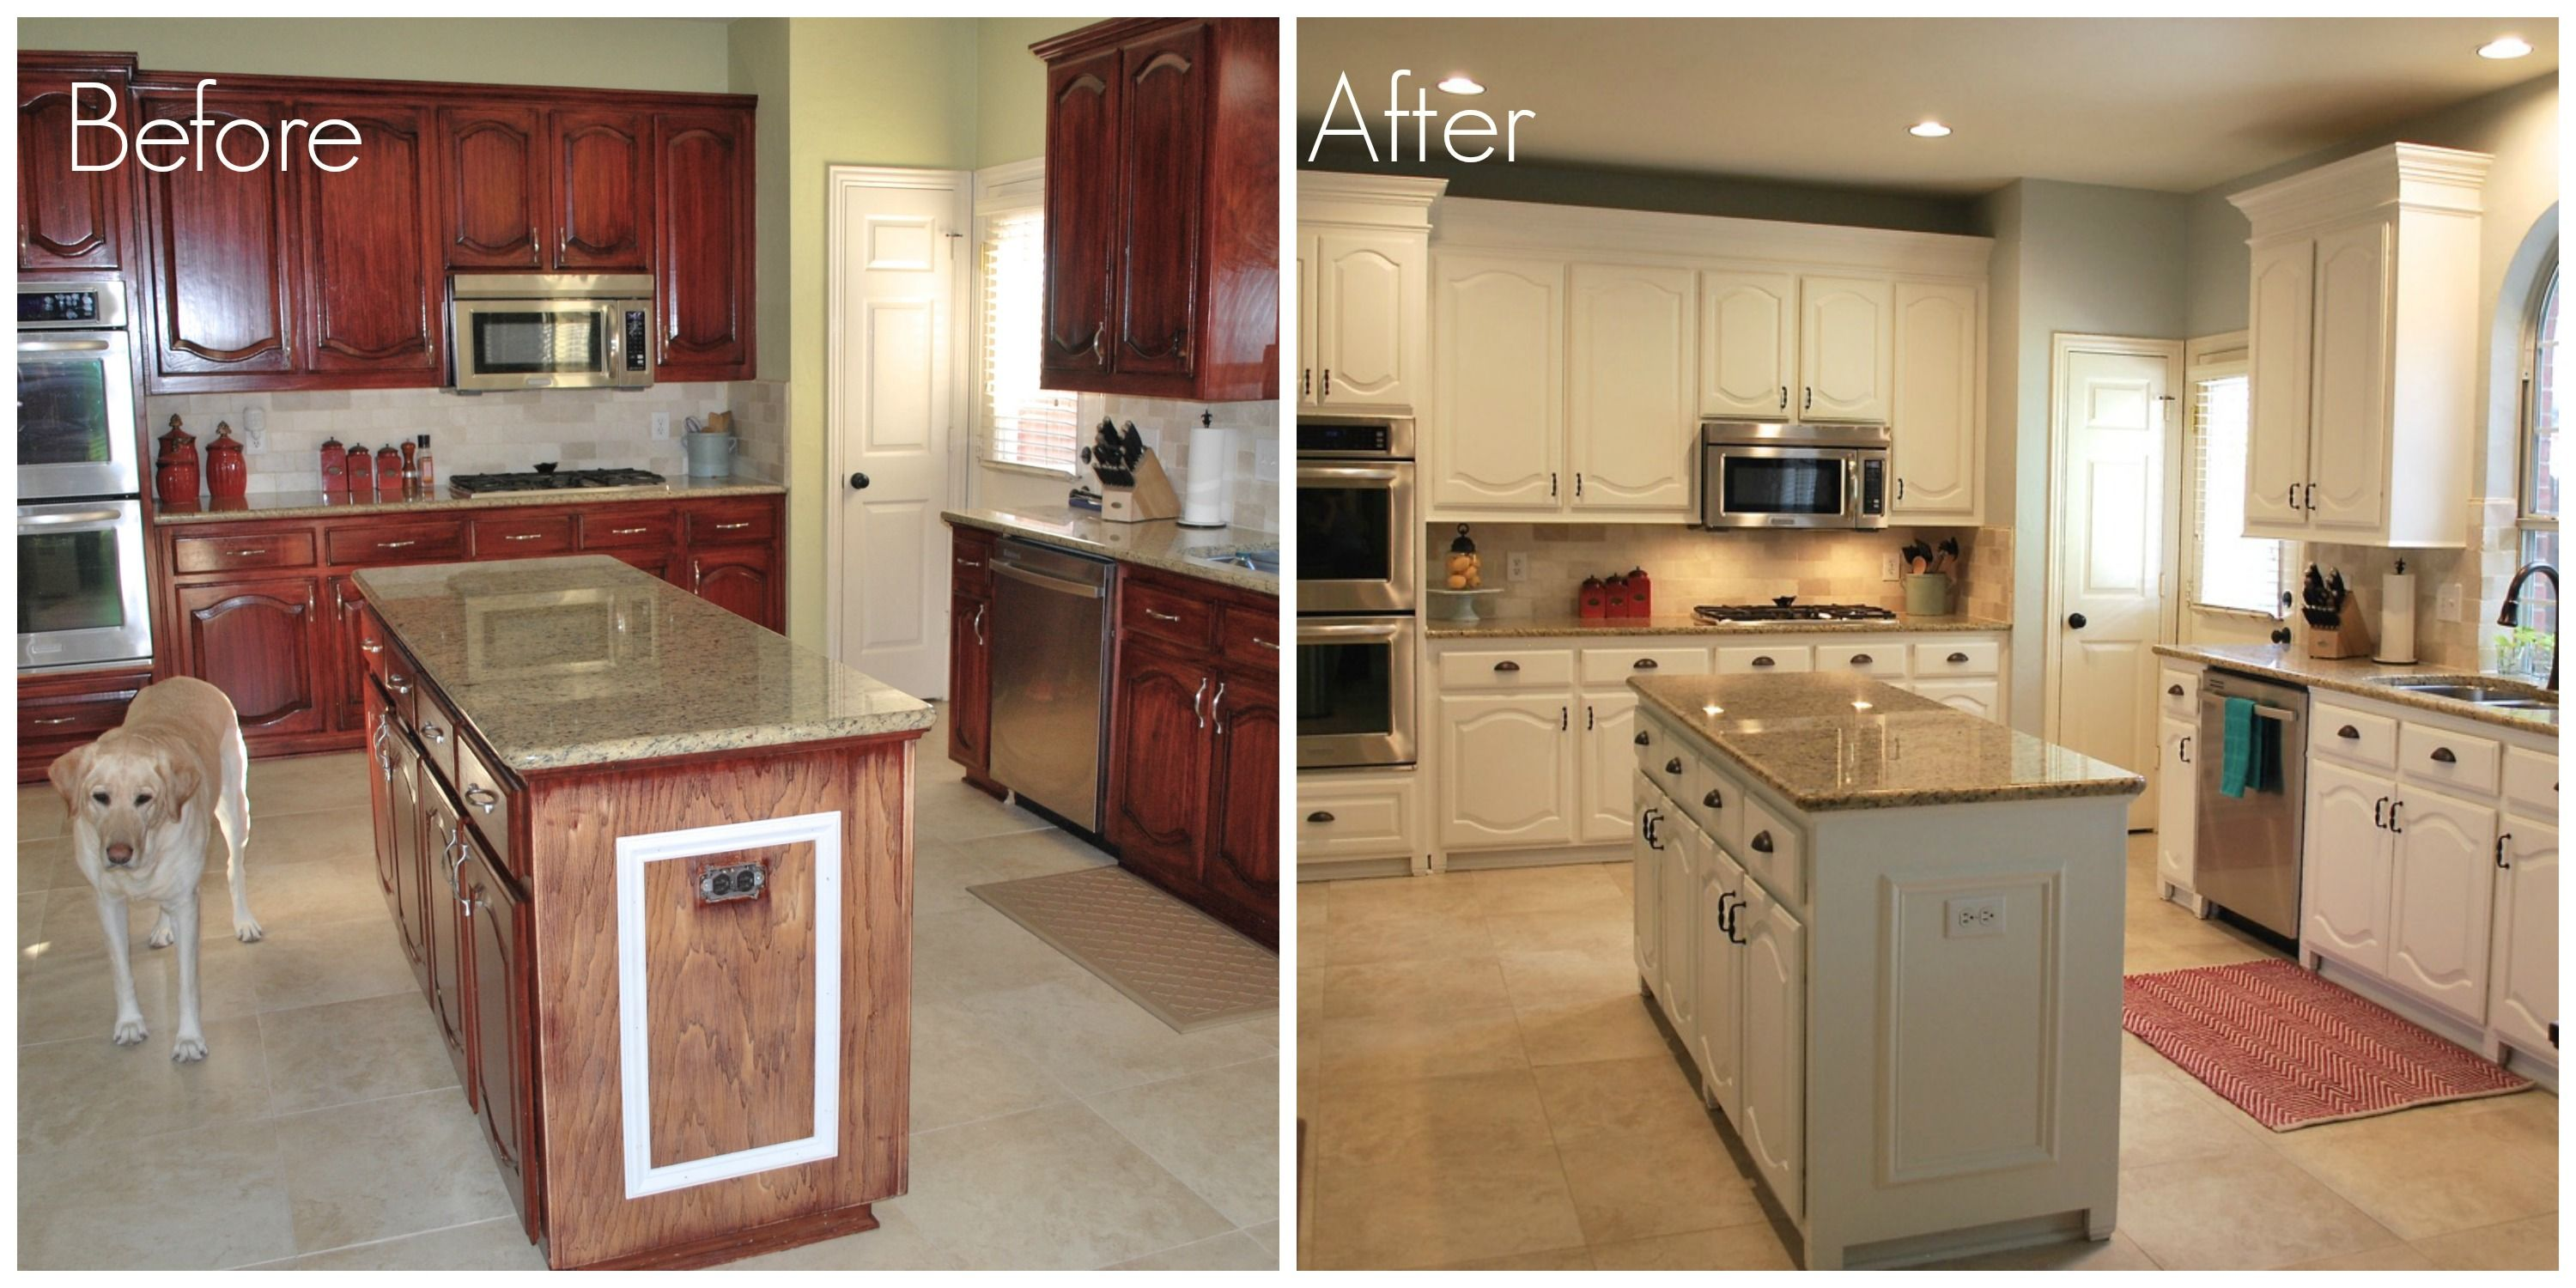 How To Paint Kitchen Cabinets White With A Sprayer Before And After Kitchen Remodel Pinterest Painting